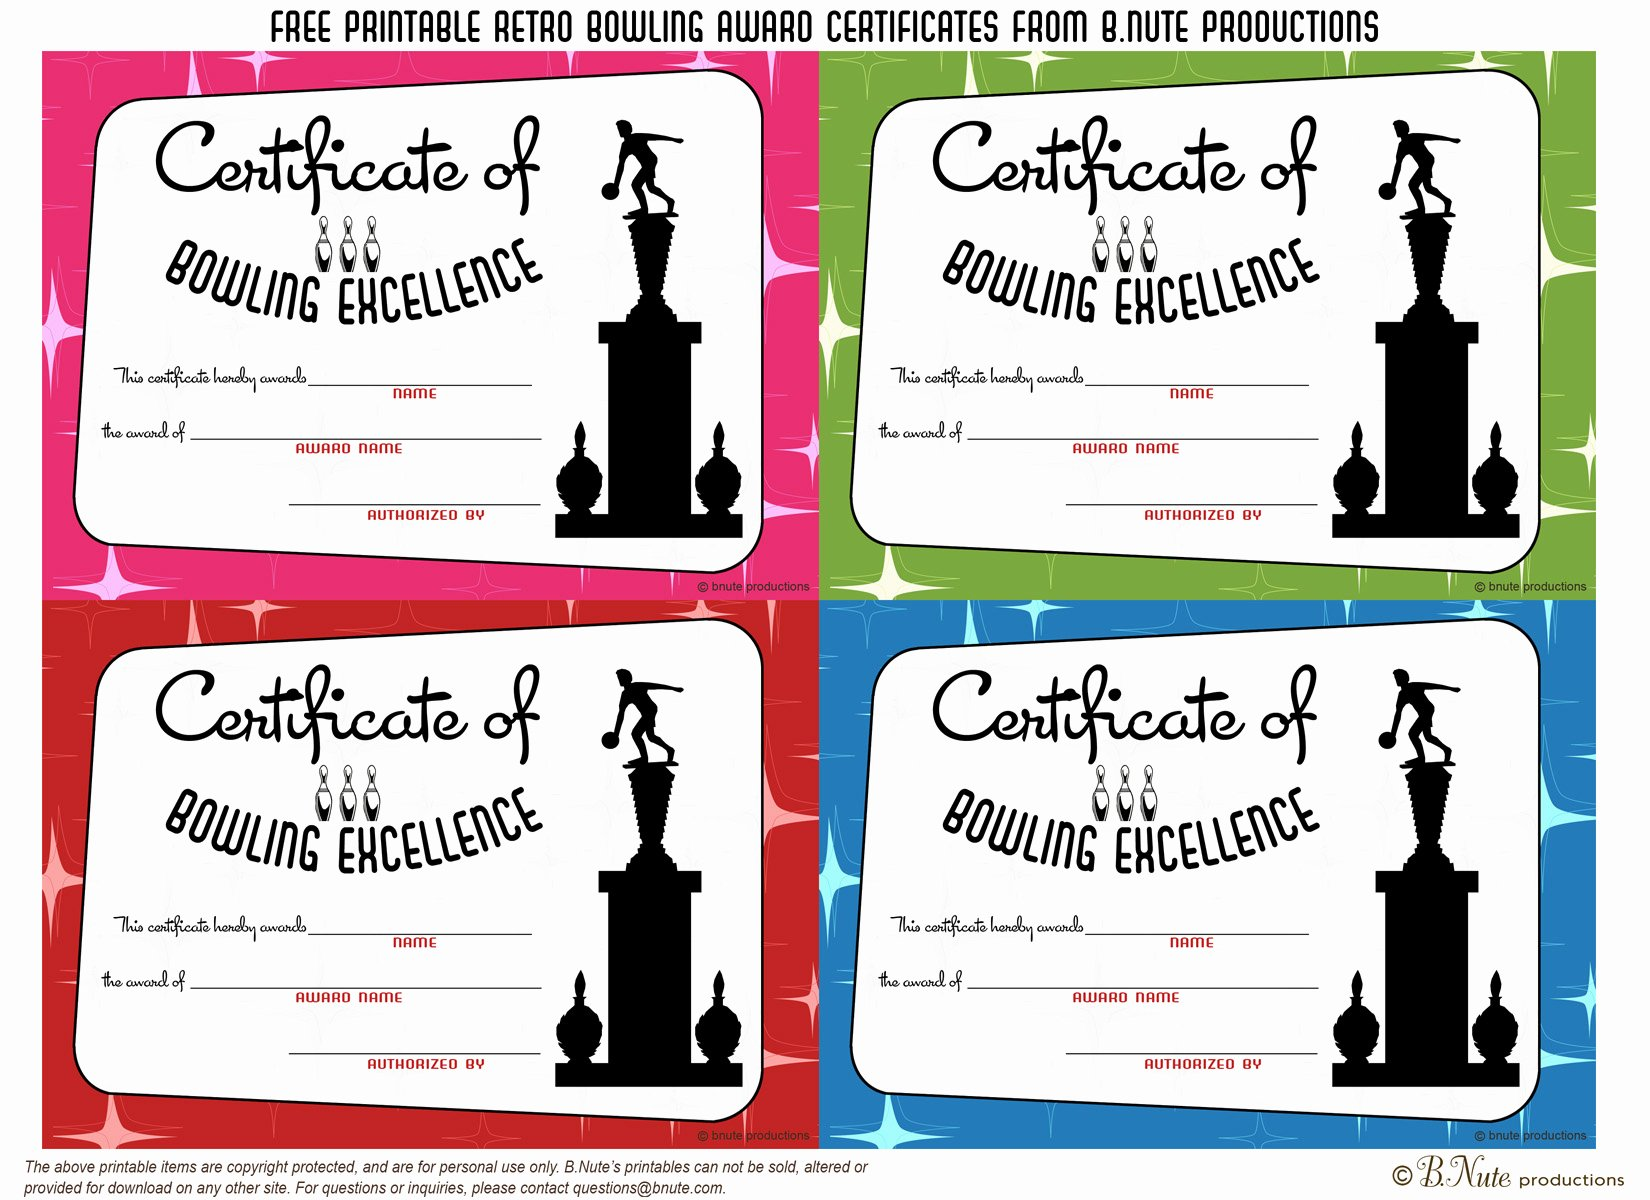 Funny soccer Award Certificates Awesome Bnute Productions Free Printable Bowling Award Certificates